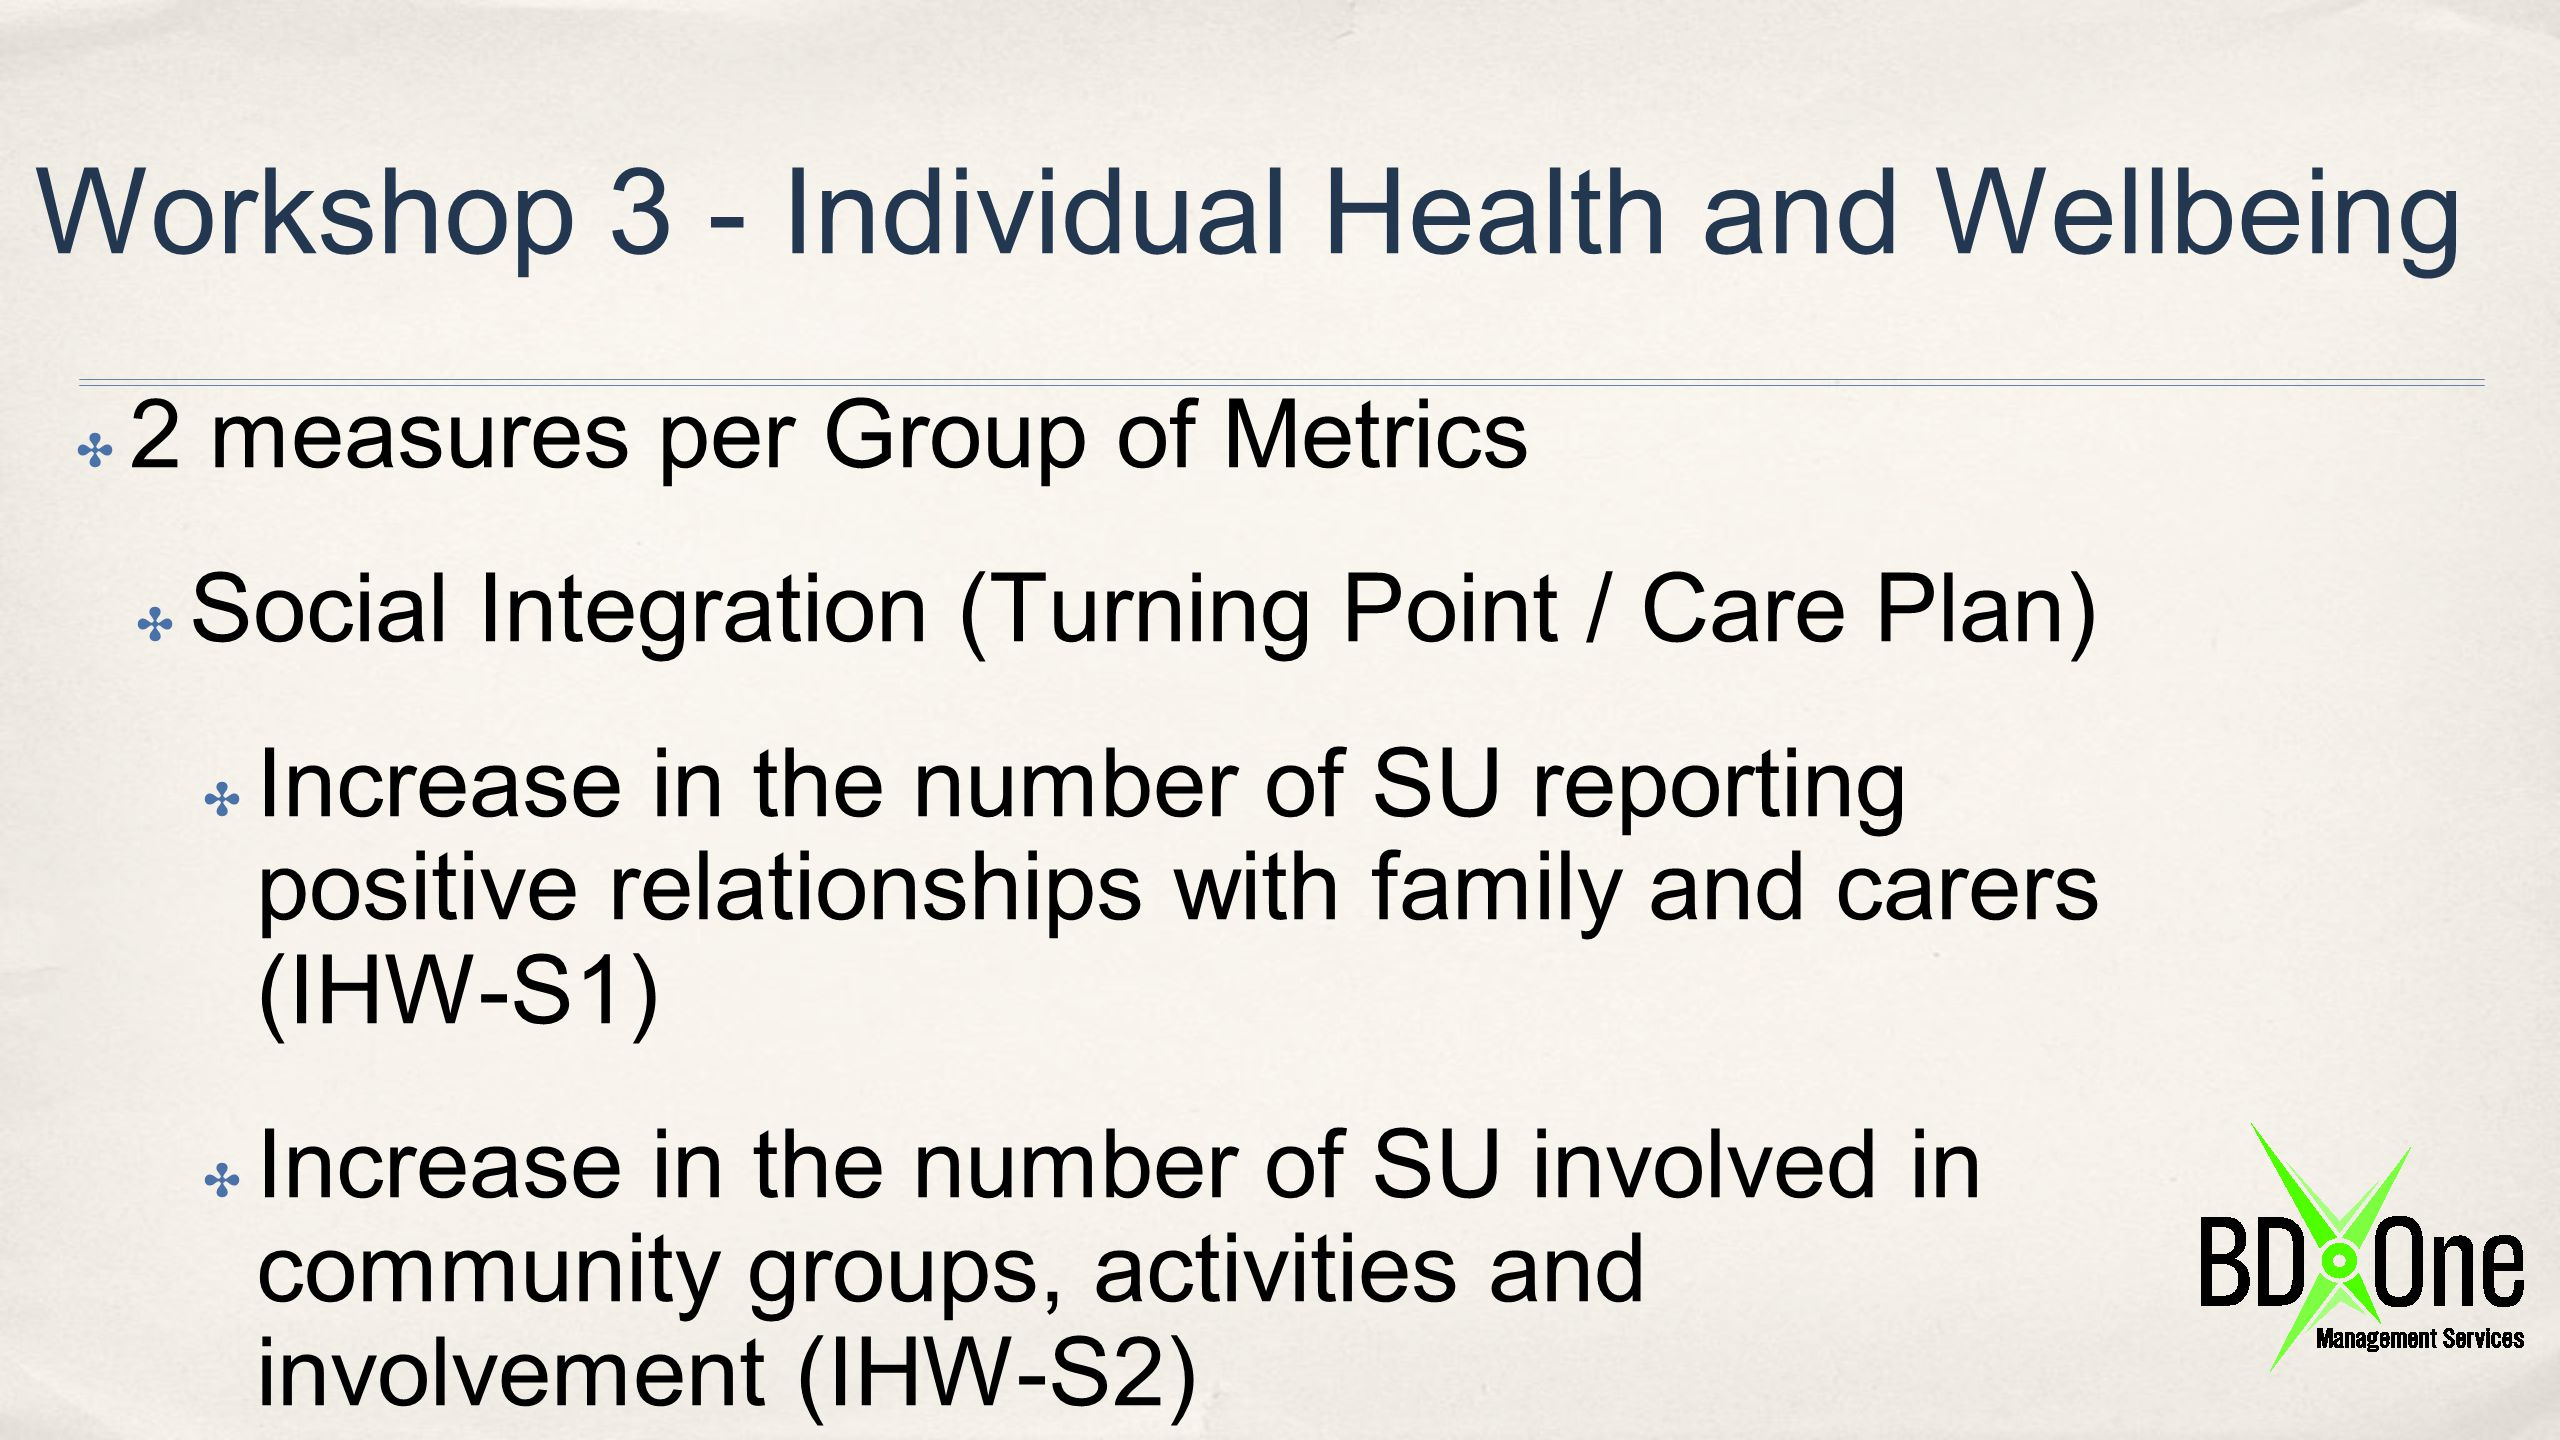 Workshop 3 - Individual Health and Wellbeing ✤ 2 measures per Group of Metrics ✤ Social Integration (Turning Point / Care Plan) ✤ Increase in the numb